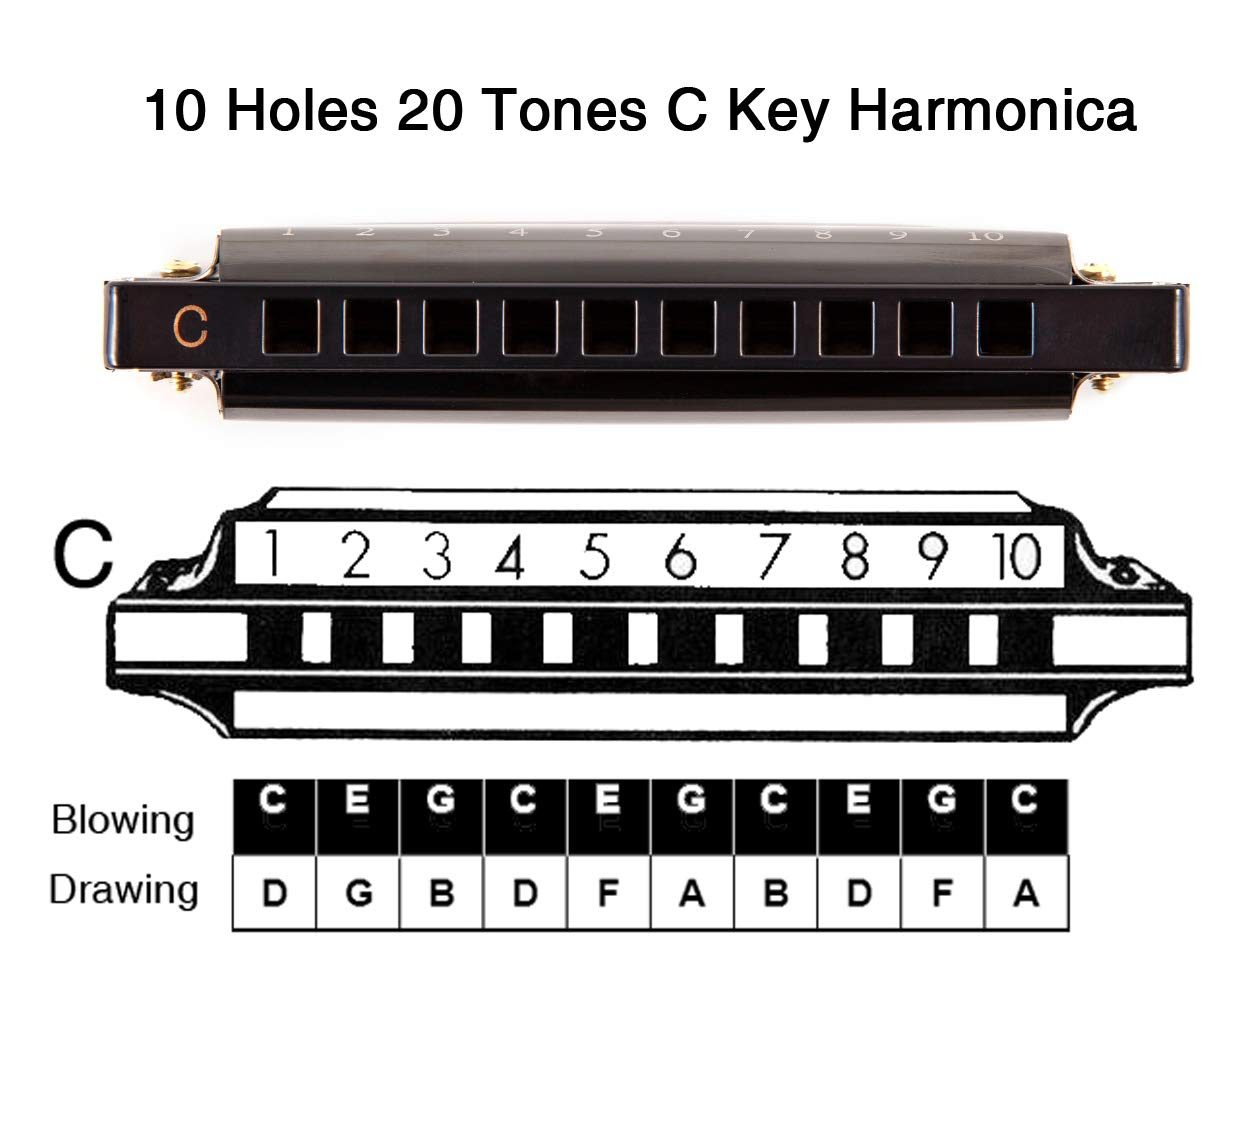 JSL Harmonica, Standard Diatonic Key of C 10 Holes 20 Tones Blues Mouth Organ Harp For Kids, Beginners, Professional, Students (Blues) by jieshiling (Image #3)